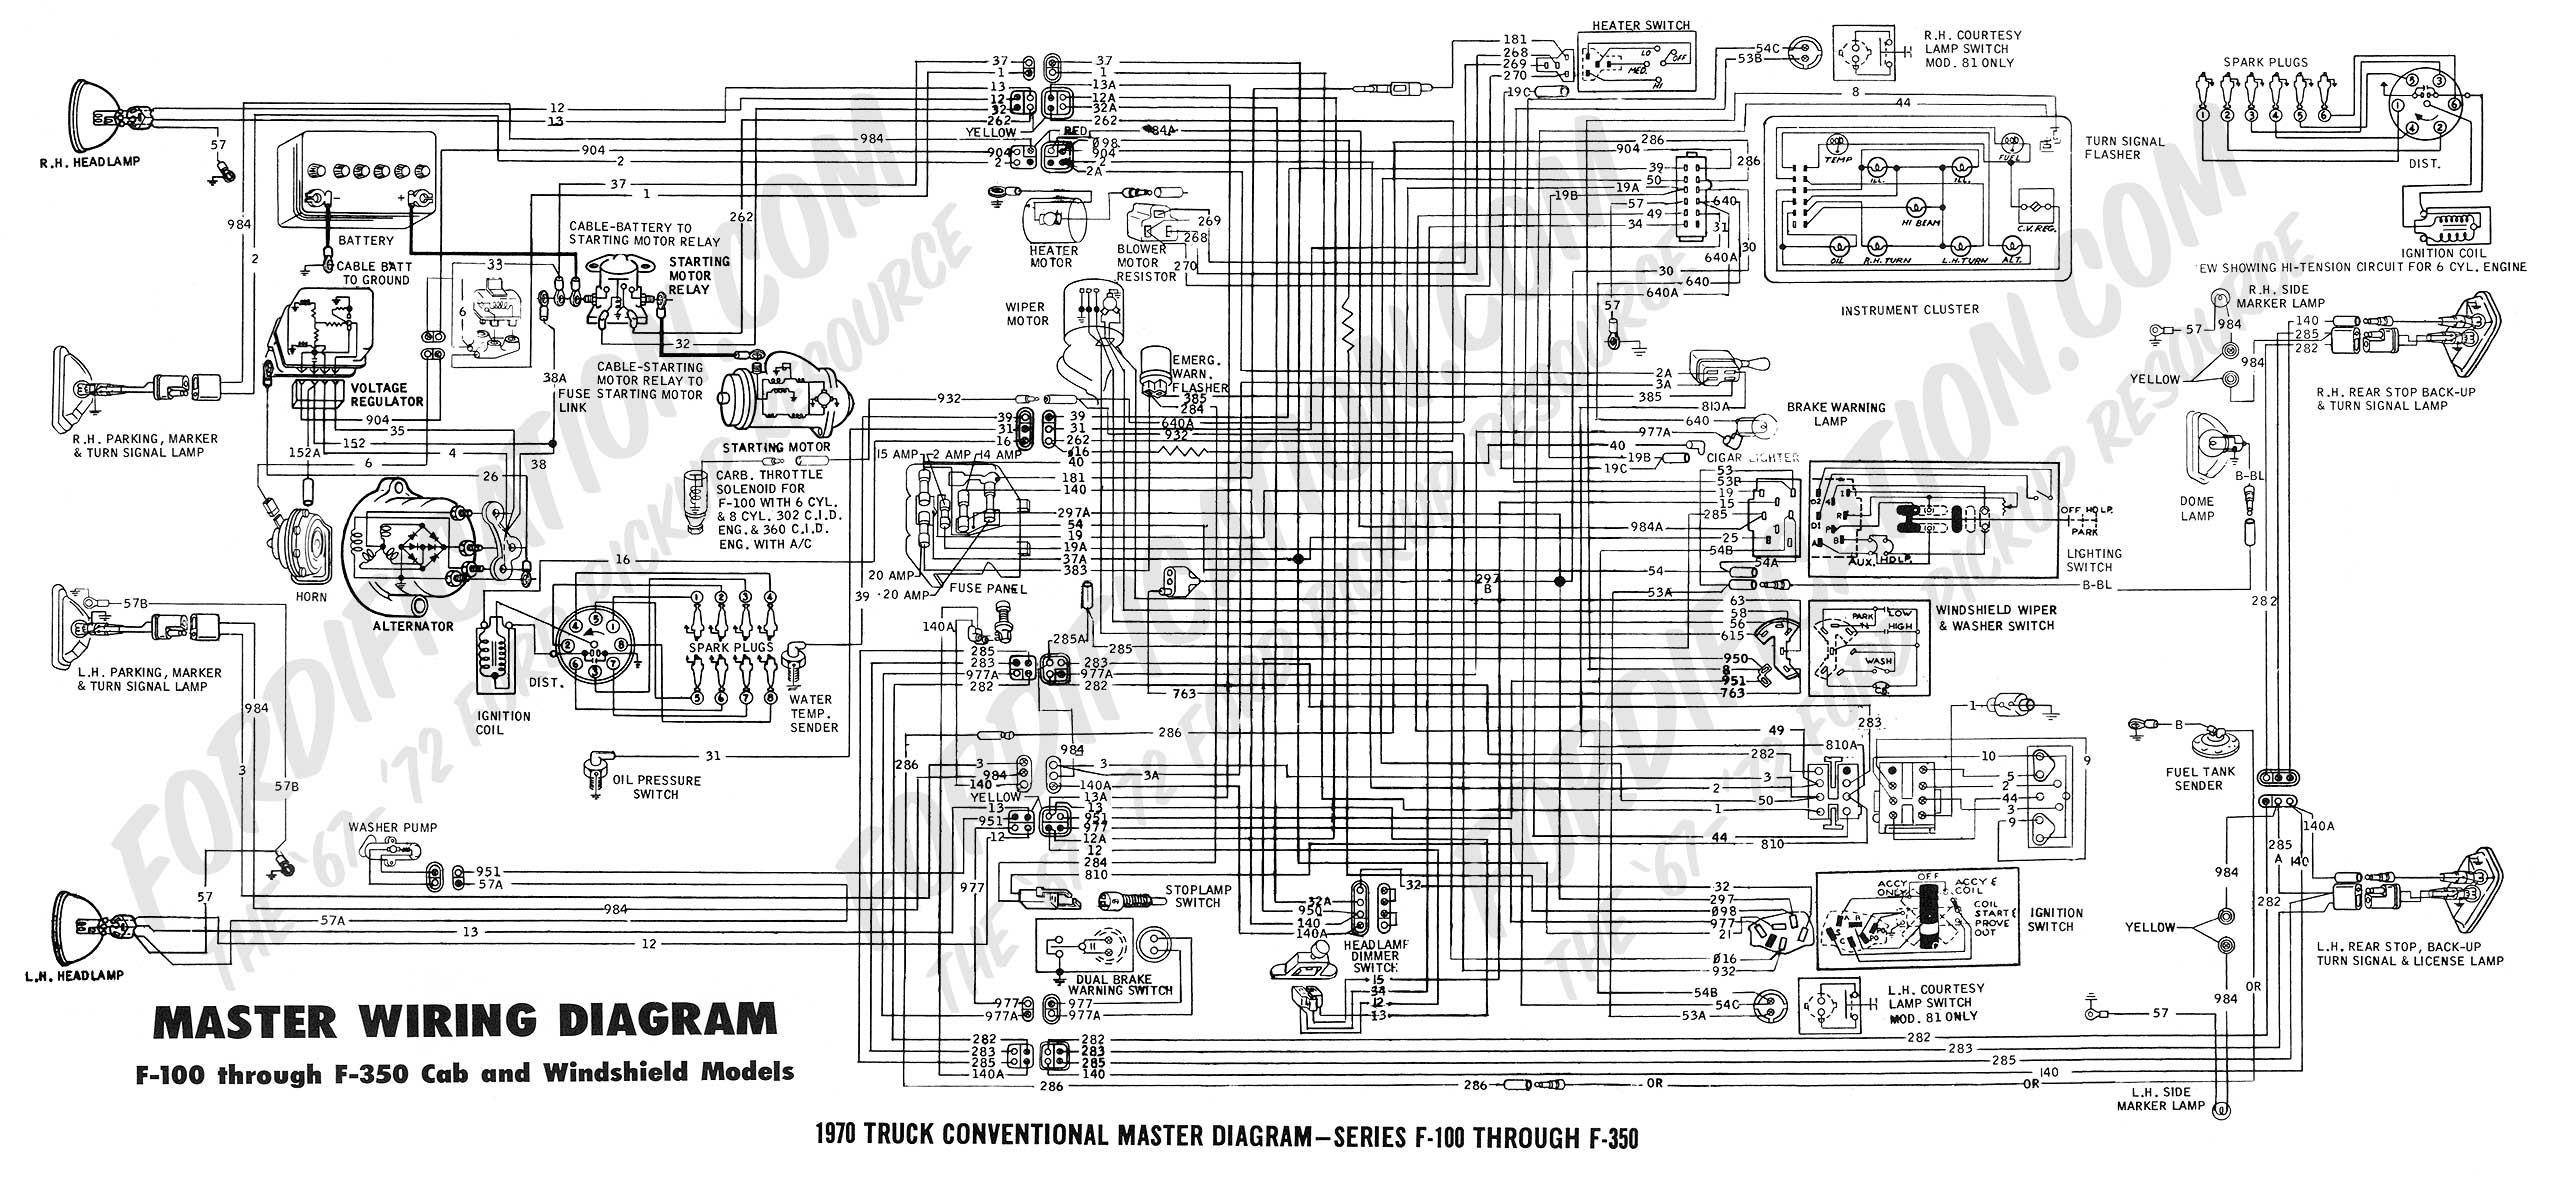 wiring diagram 70_master wiring diagram for 1970 ford mustang readingrat net 94 Ford Mustang Coupe Fuse Box at nearapp.co